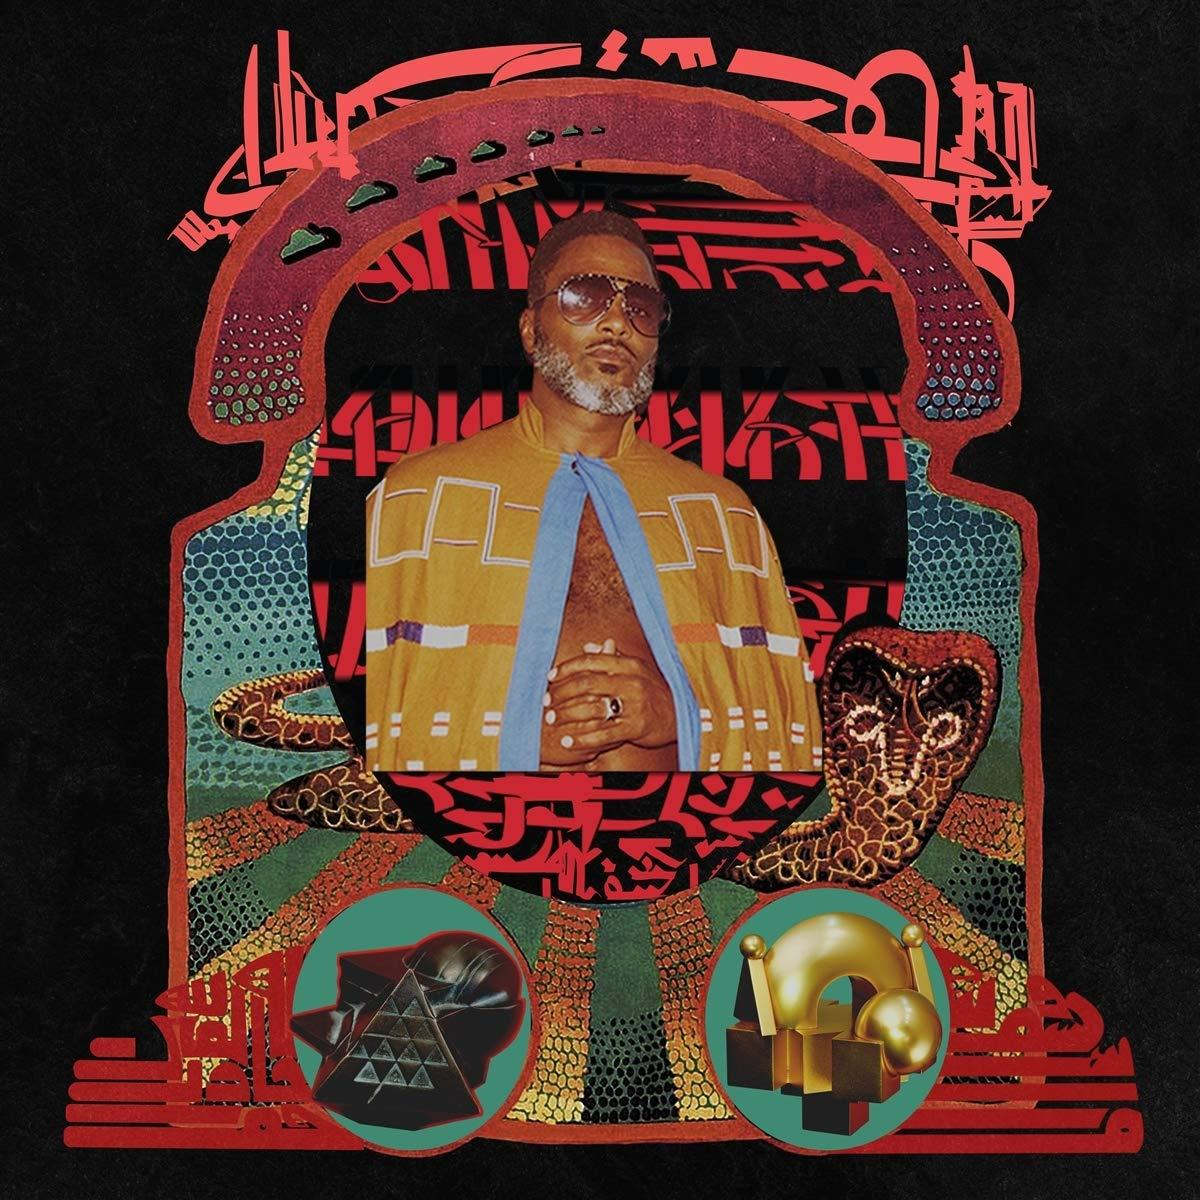 SP1335X Sub Pop  Shabazz Palaces The Don Of Diamond Dreams - LTD (LP)